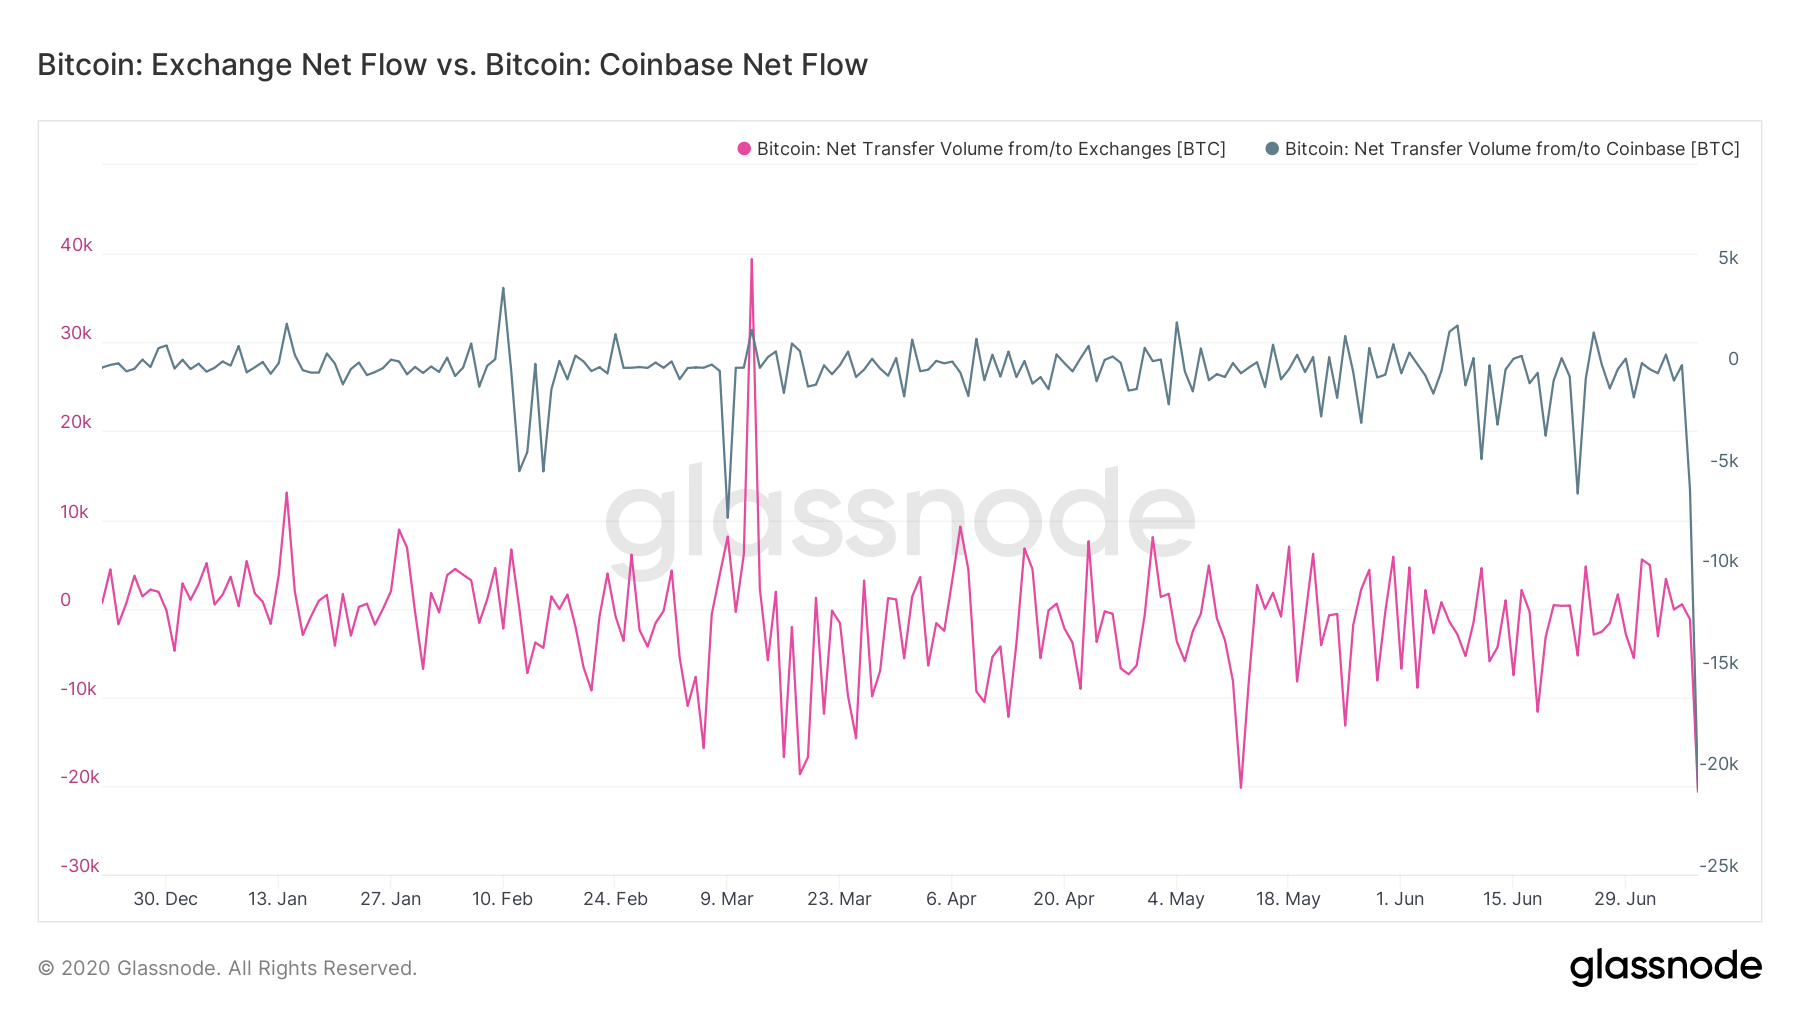 All Exchanges versus Coinbase net Bitcoin flow. Source: Glassnode